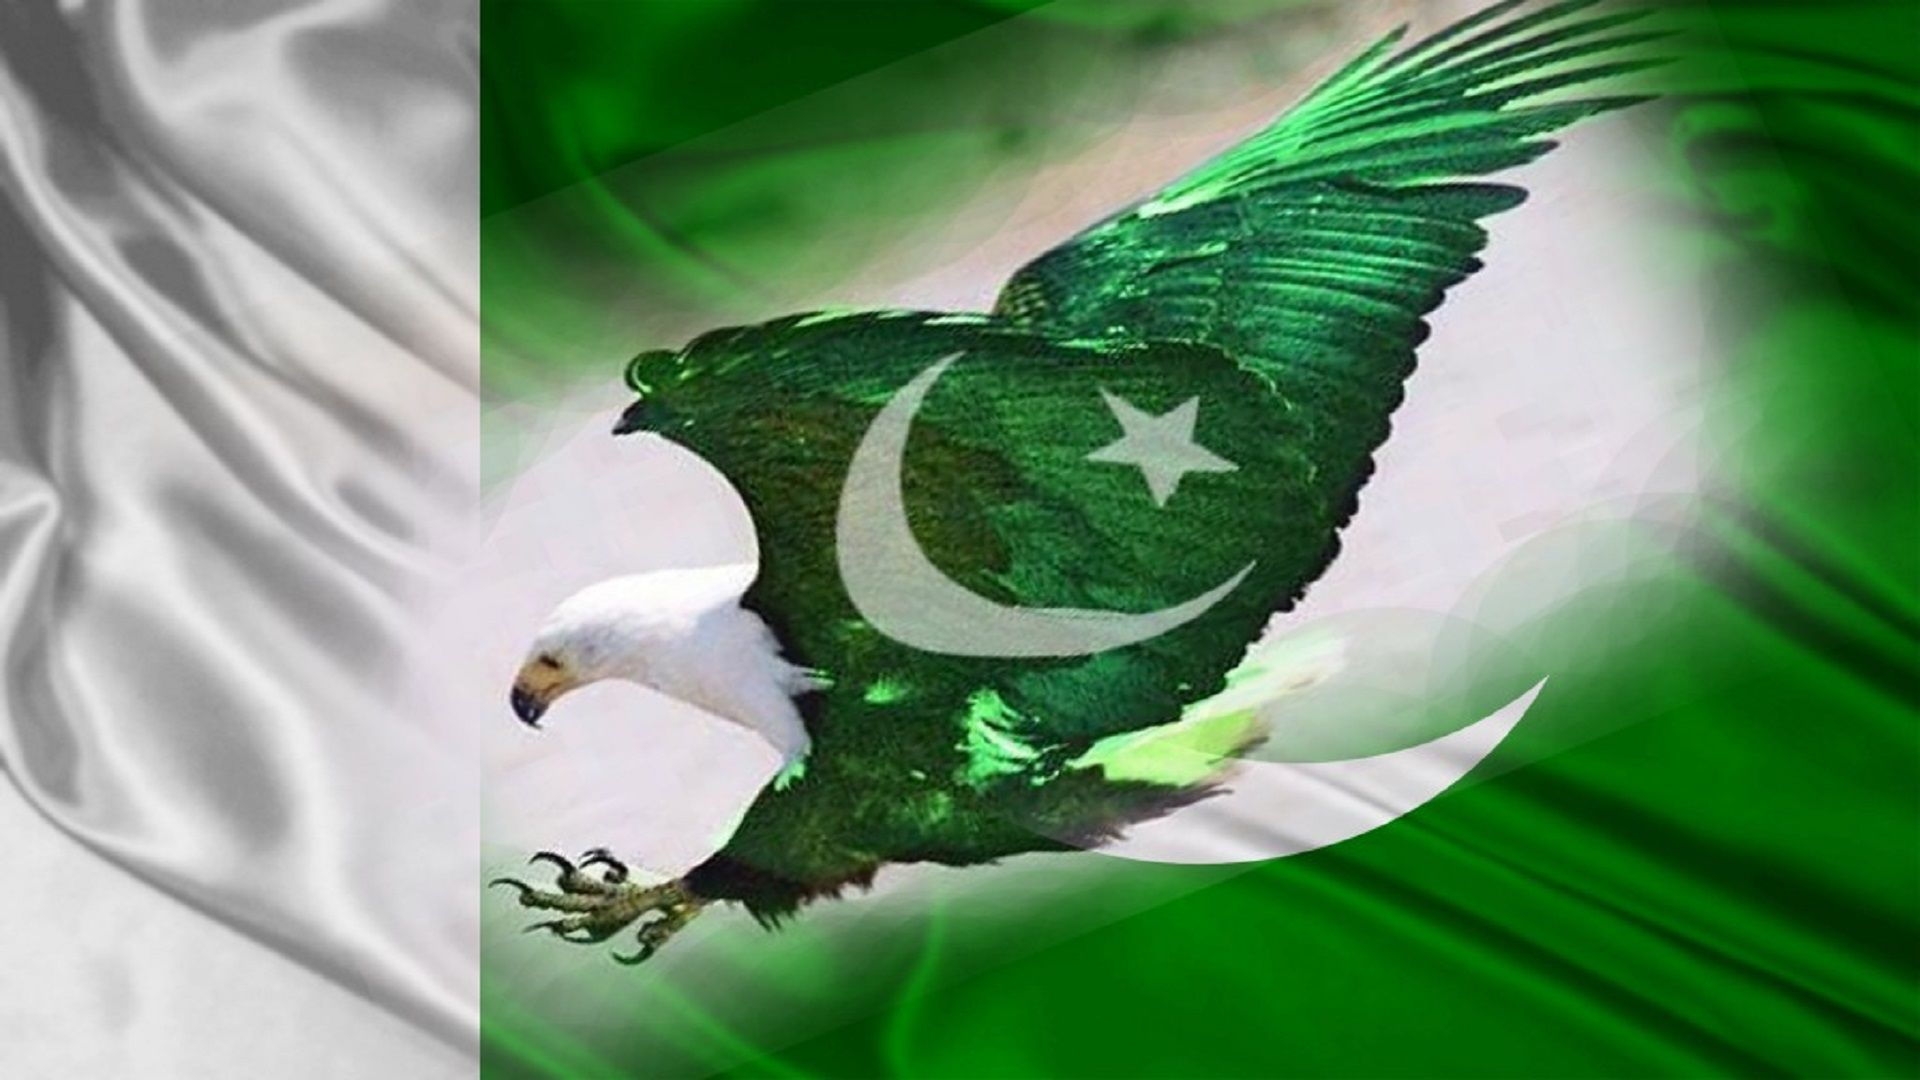 1920x1080 eagle-pakistani-flag-wallpapers-free-hd - HD Wallpaper